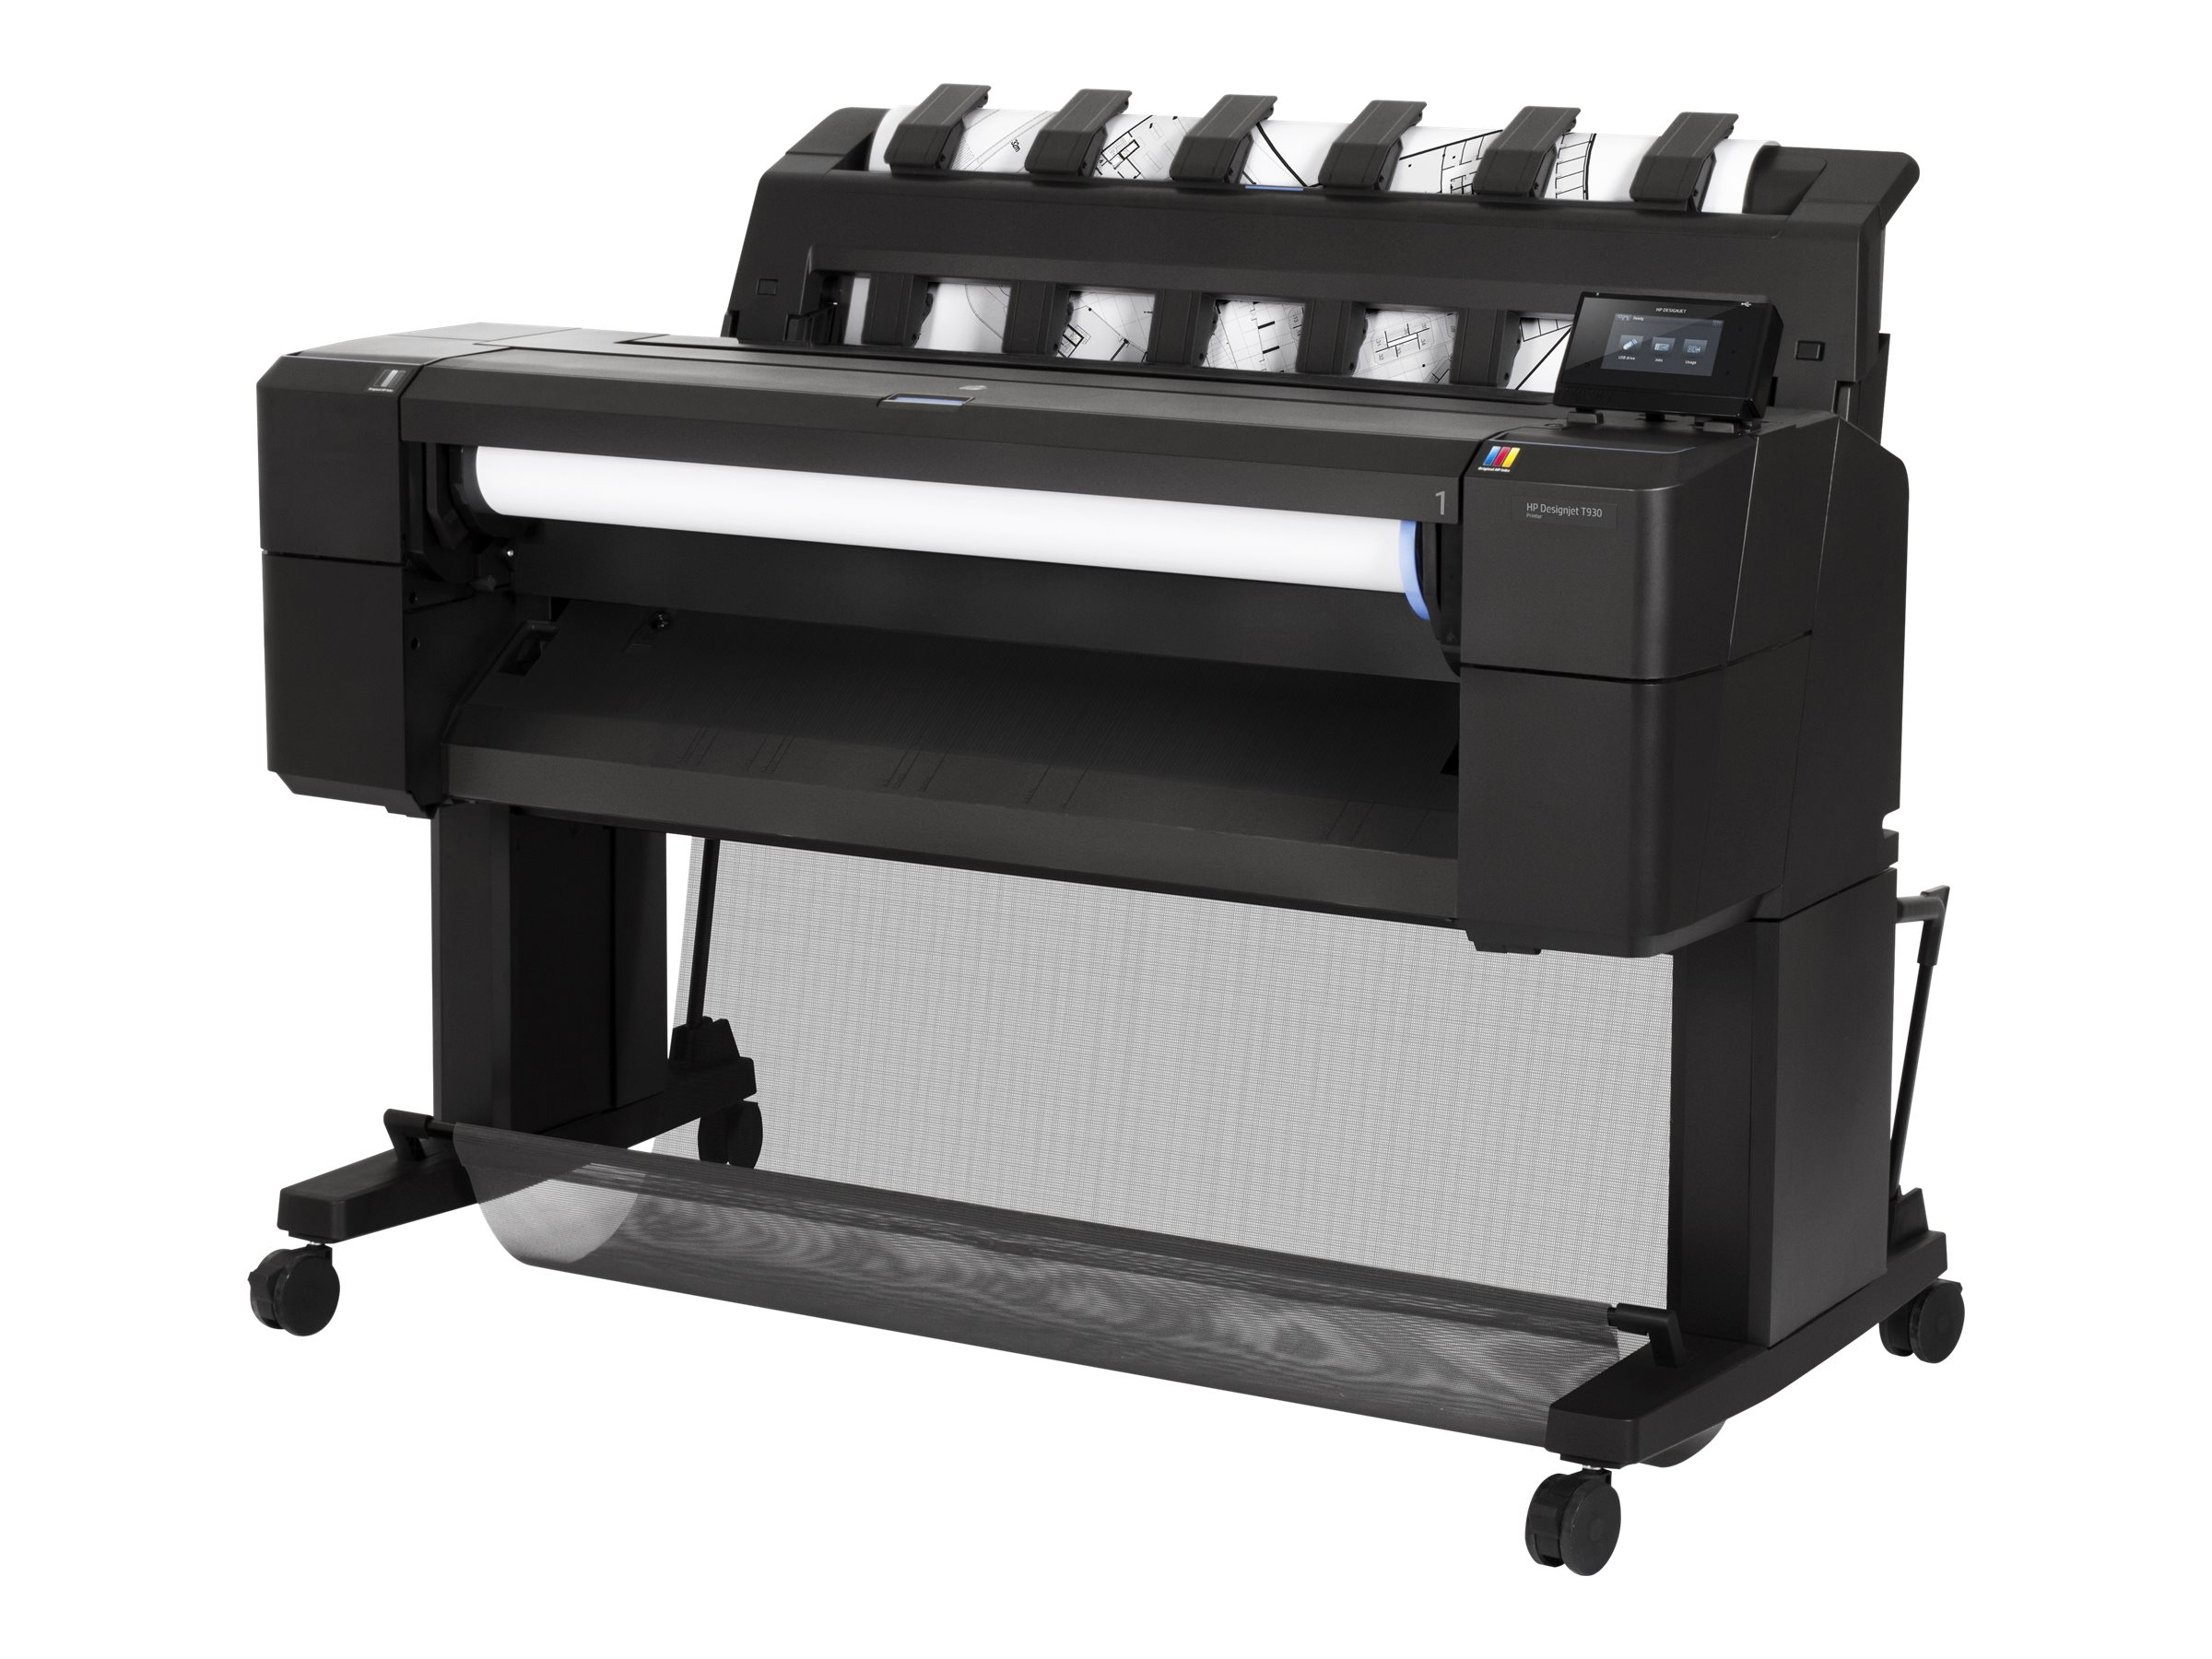 HP DesignJet T930 36 PostScript Printer w  Encrypted Hard Drive, L2Y22B#BCB, 30899459, Printers - Large Format